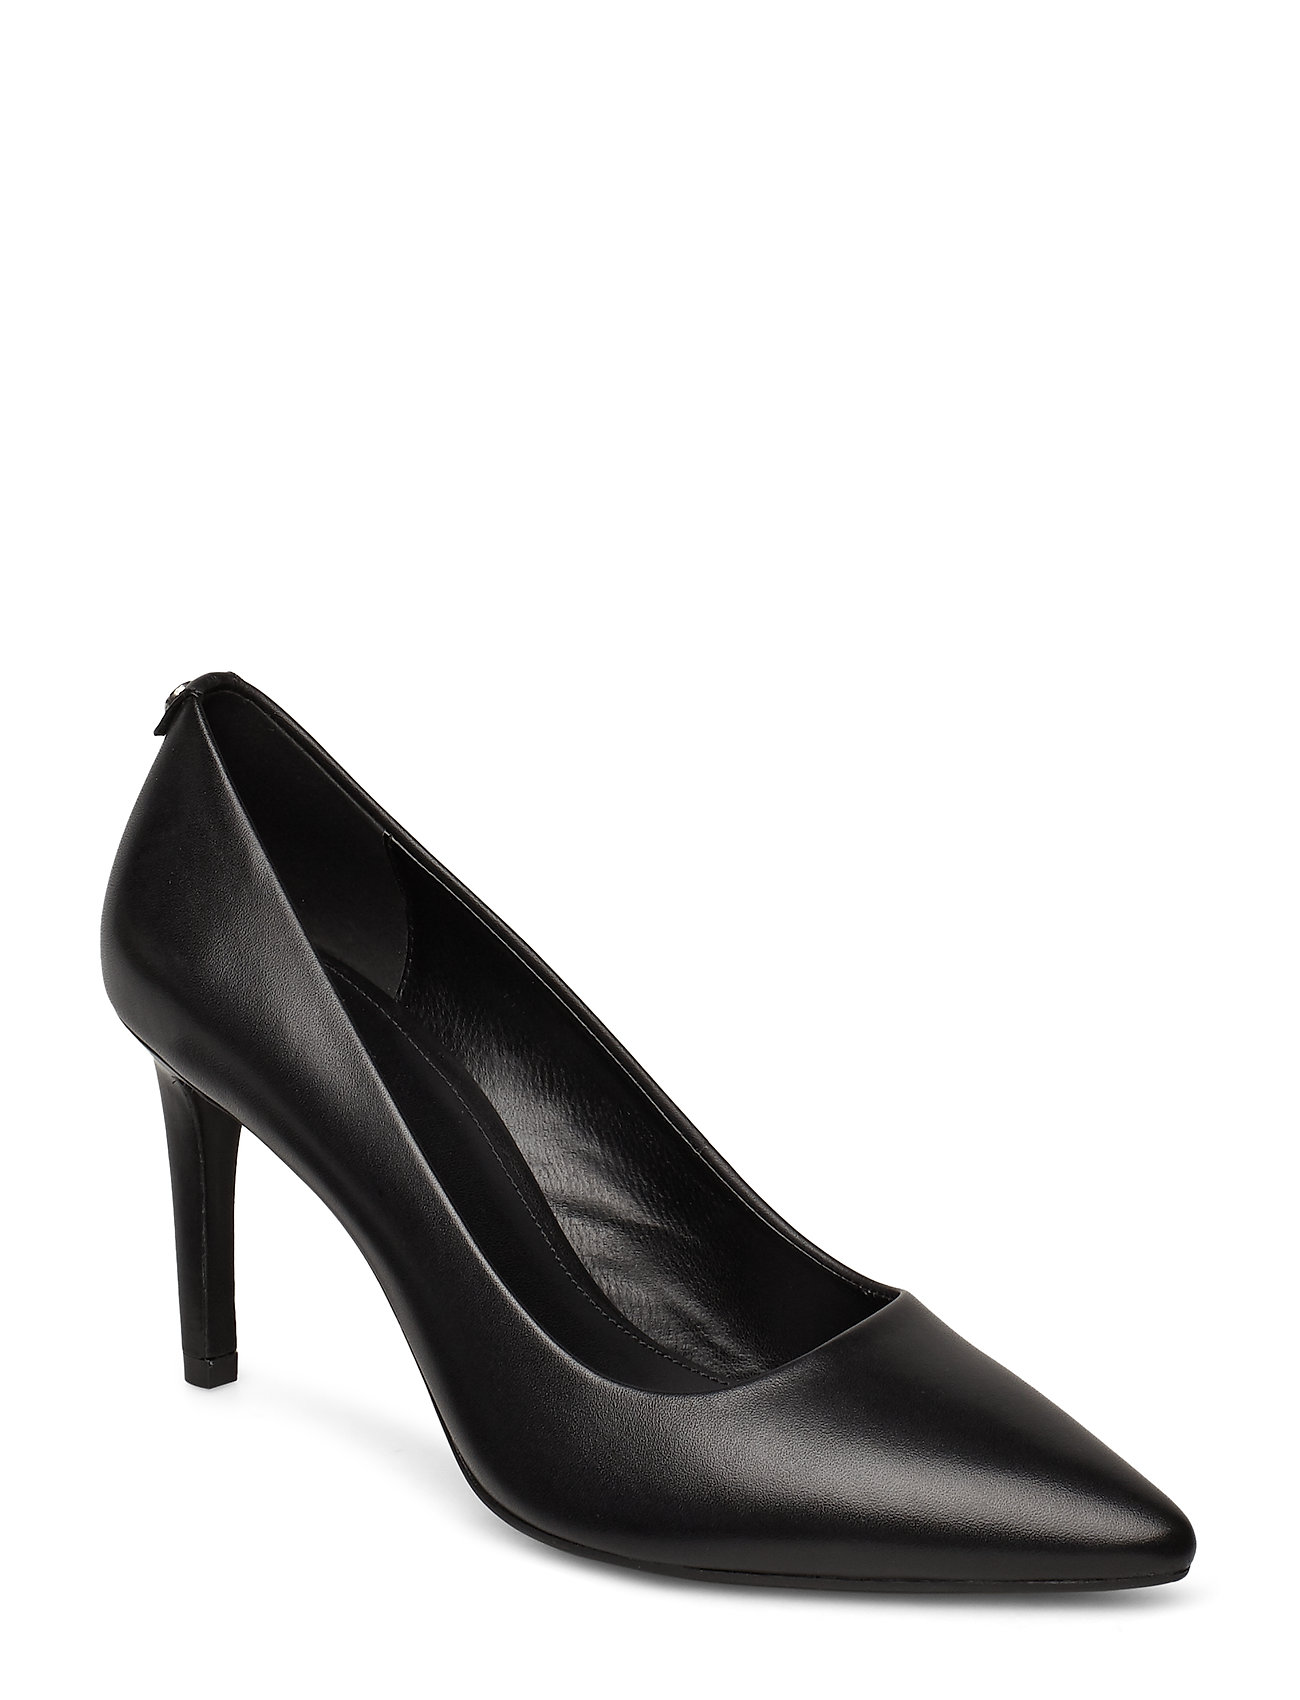 Michael Kors Shoes DOROTHY FLEX PUMP - BLACK